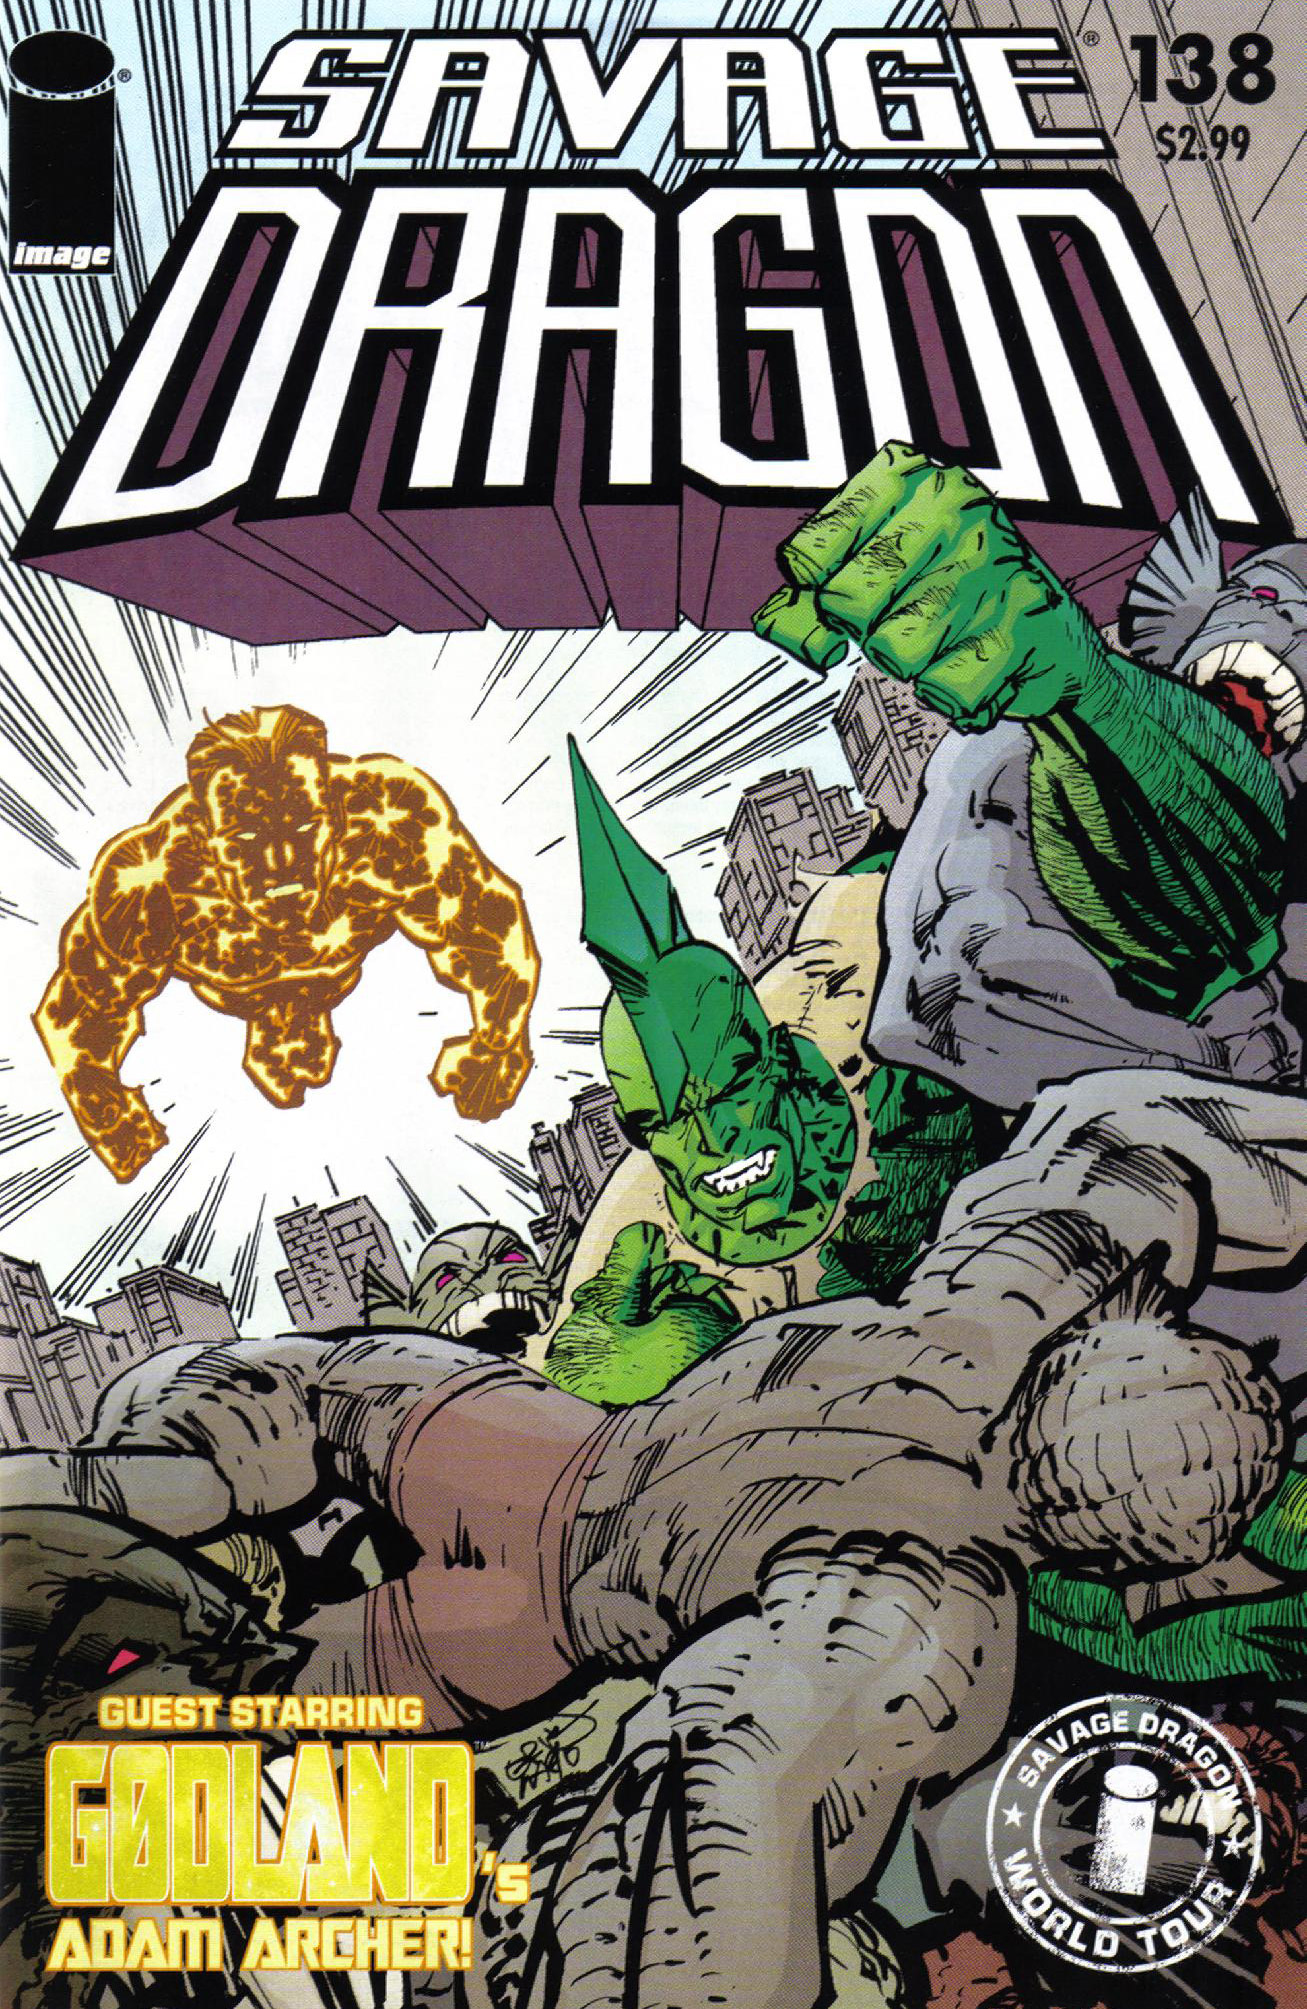 Cover Savage Dragon Vol.2 #138